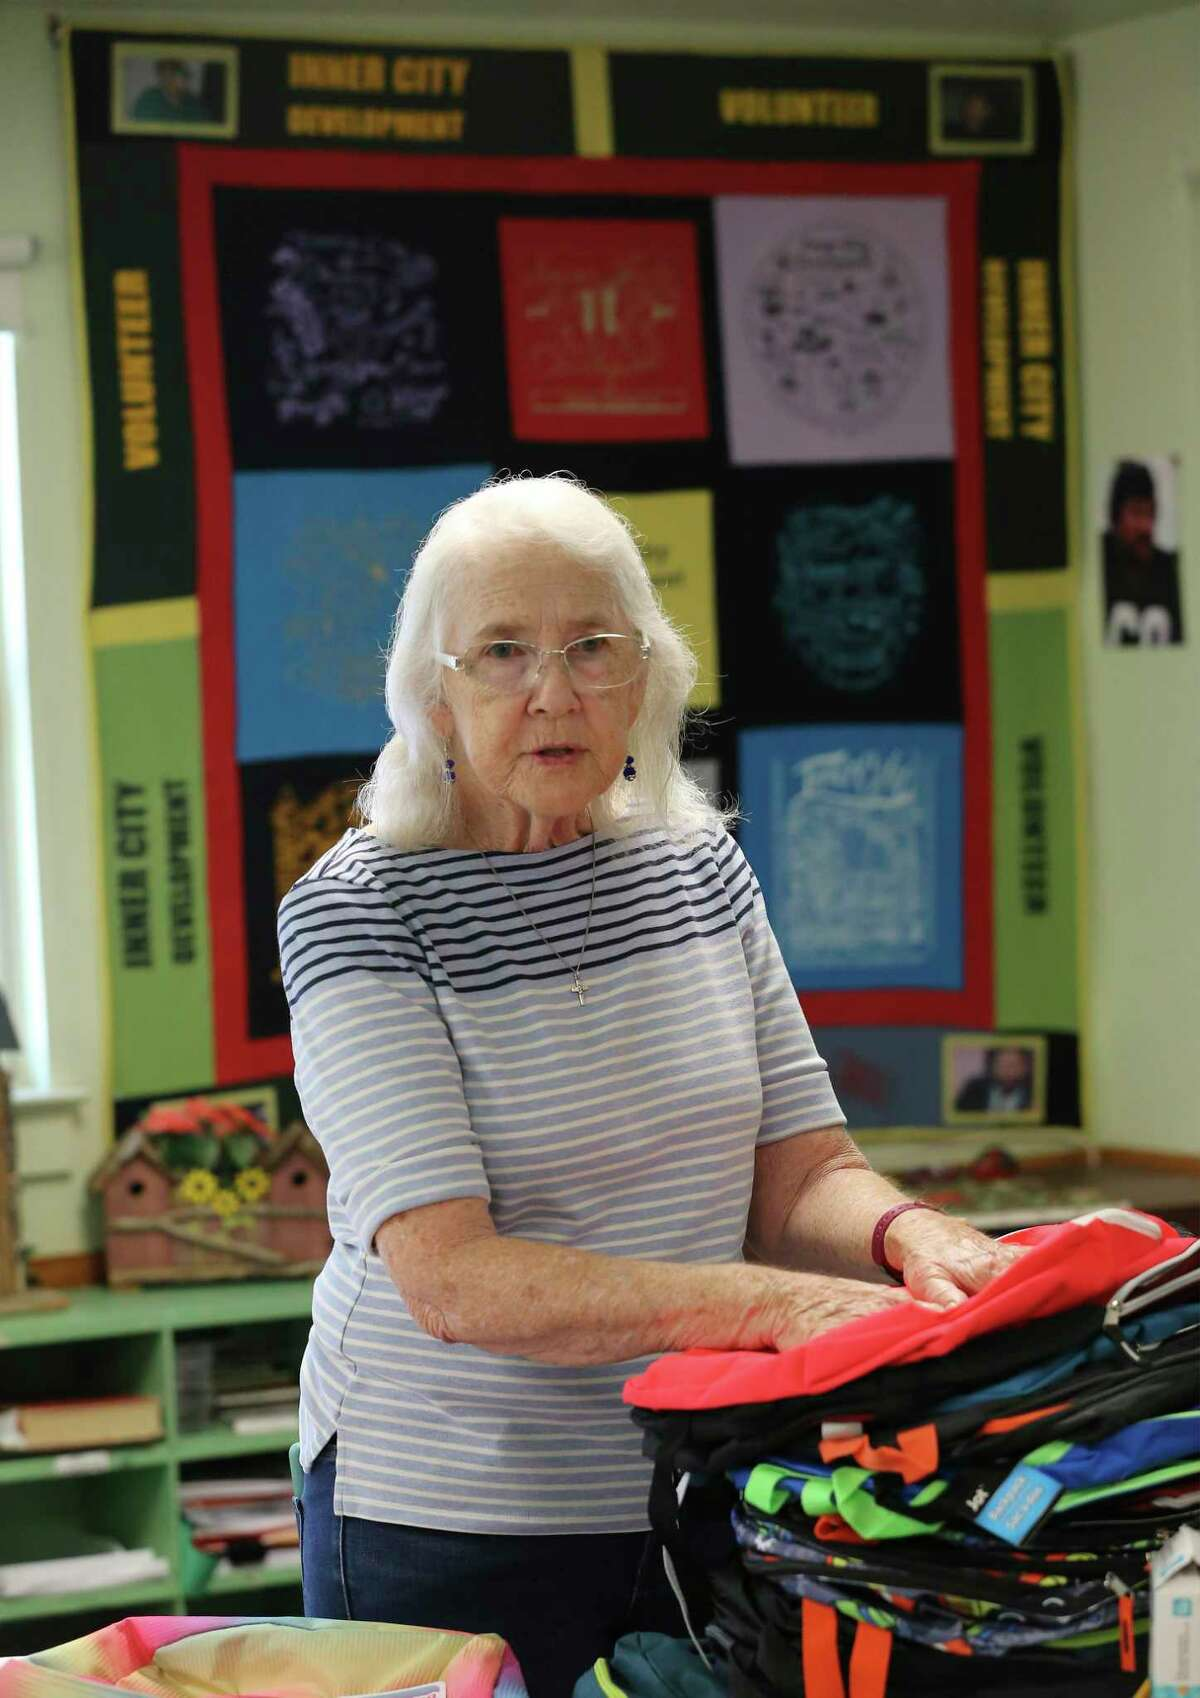 Patti Radle sorts through a pile of donated school supplies on a recent Friday. Through work on affordable housing, elected office and directing volunteers at a West Side nonprofit group, she and her husband, Rod Radle, have been helping the underserved in San Antonio for more than 50 years.